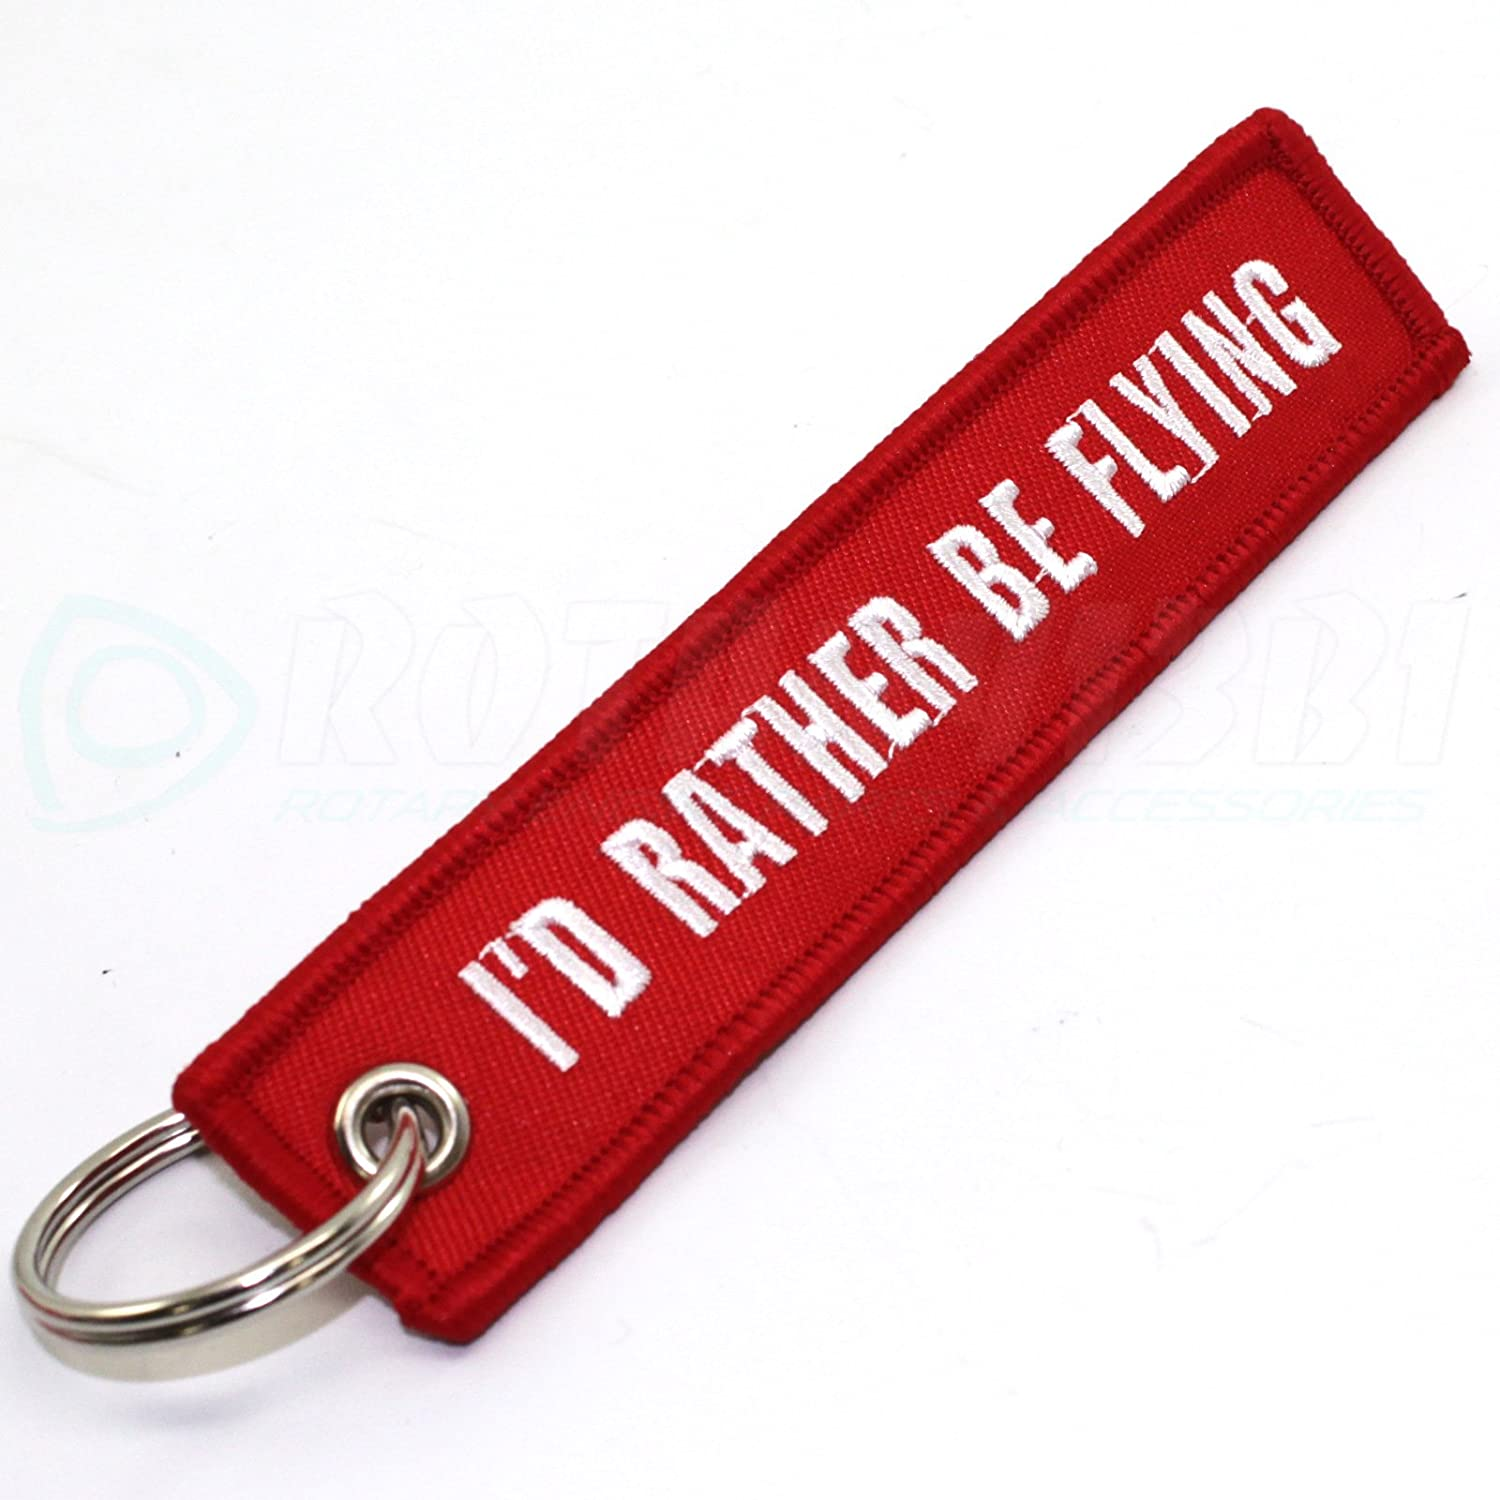 Rotary13B1 - ID RATHER BE FLYING - Keychain